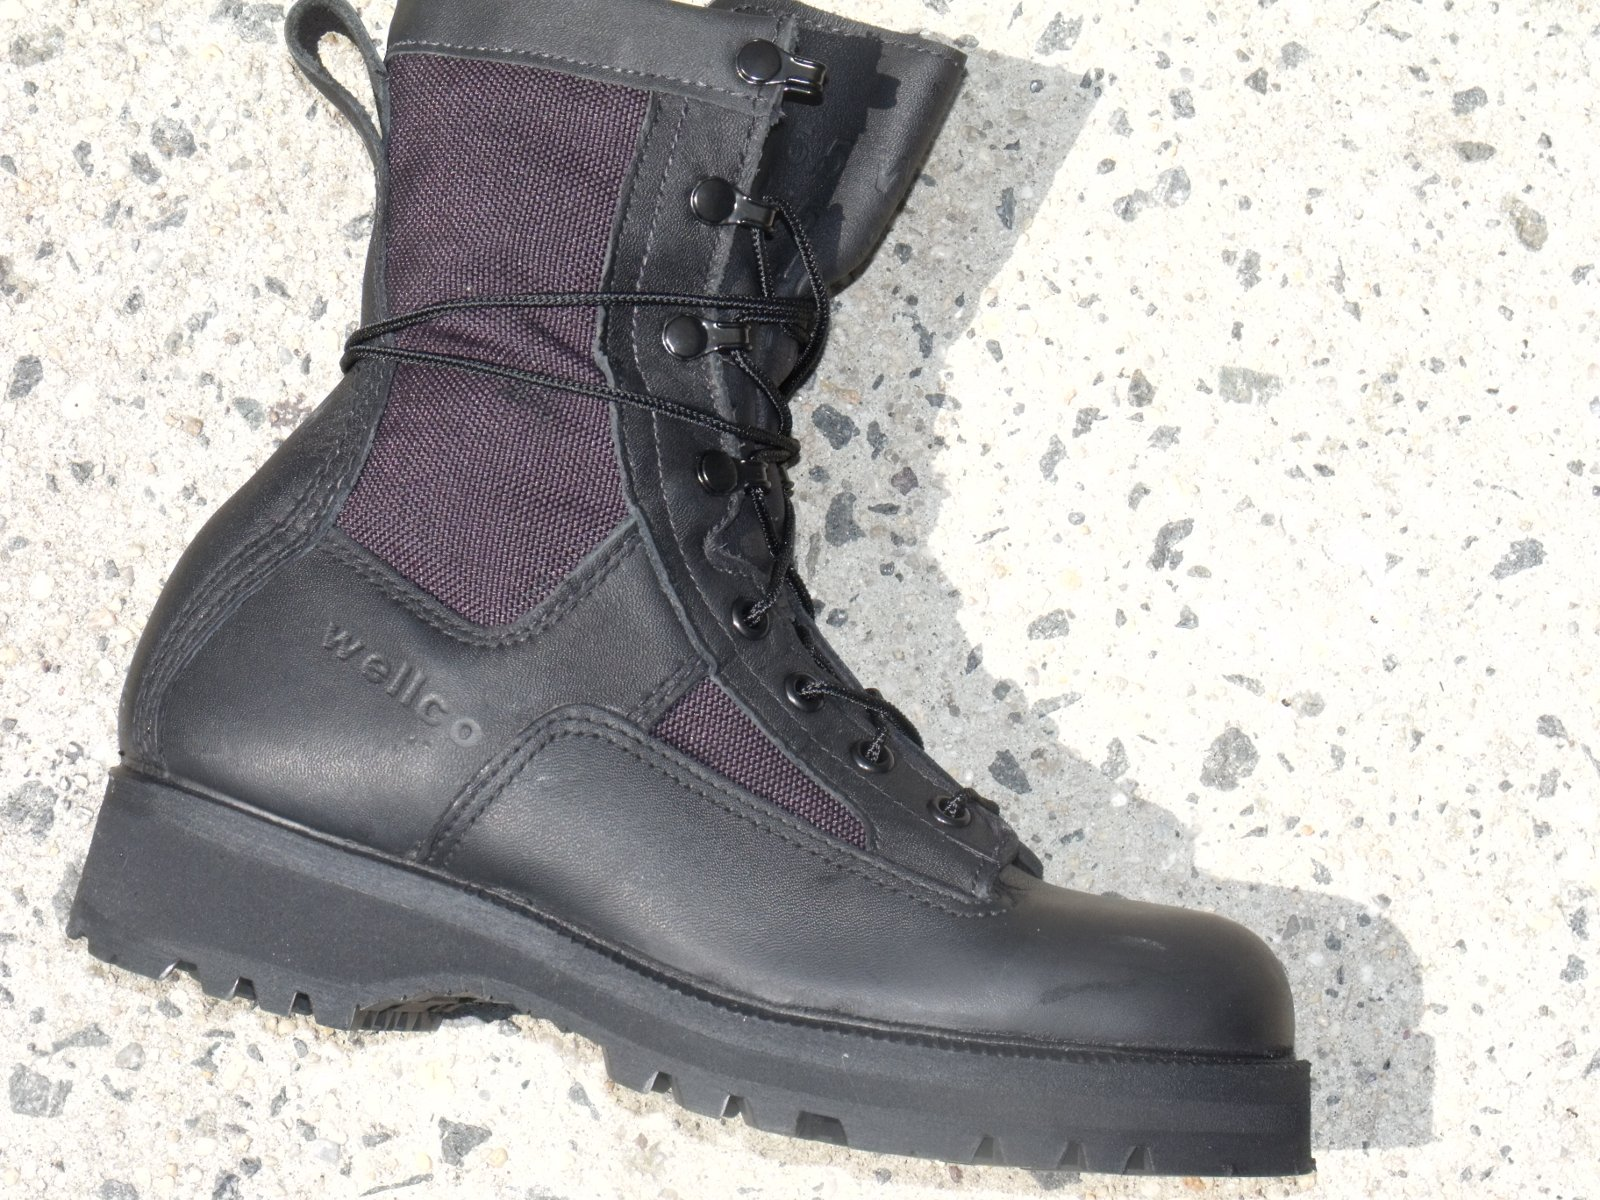 Belleville Wellco Bates GORE-TEX Military Black Leather Waterproof ...